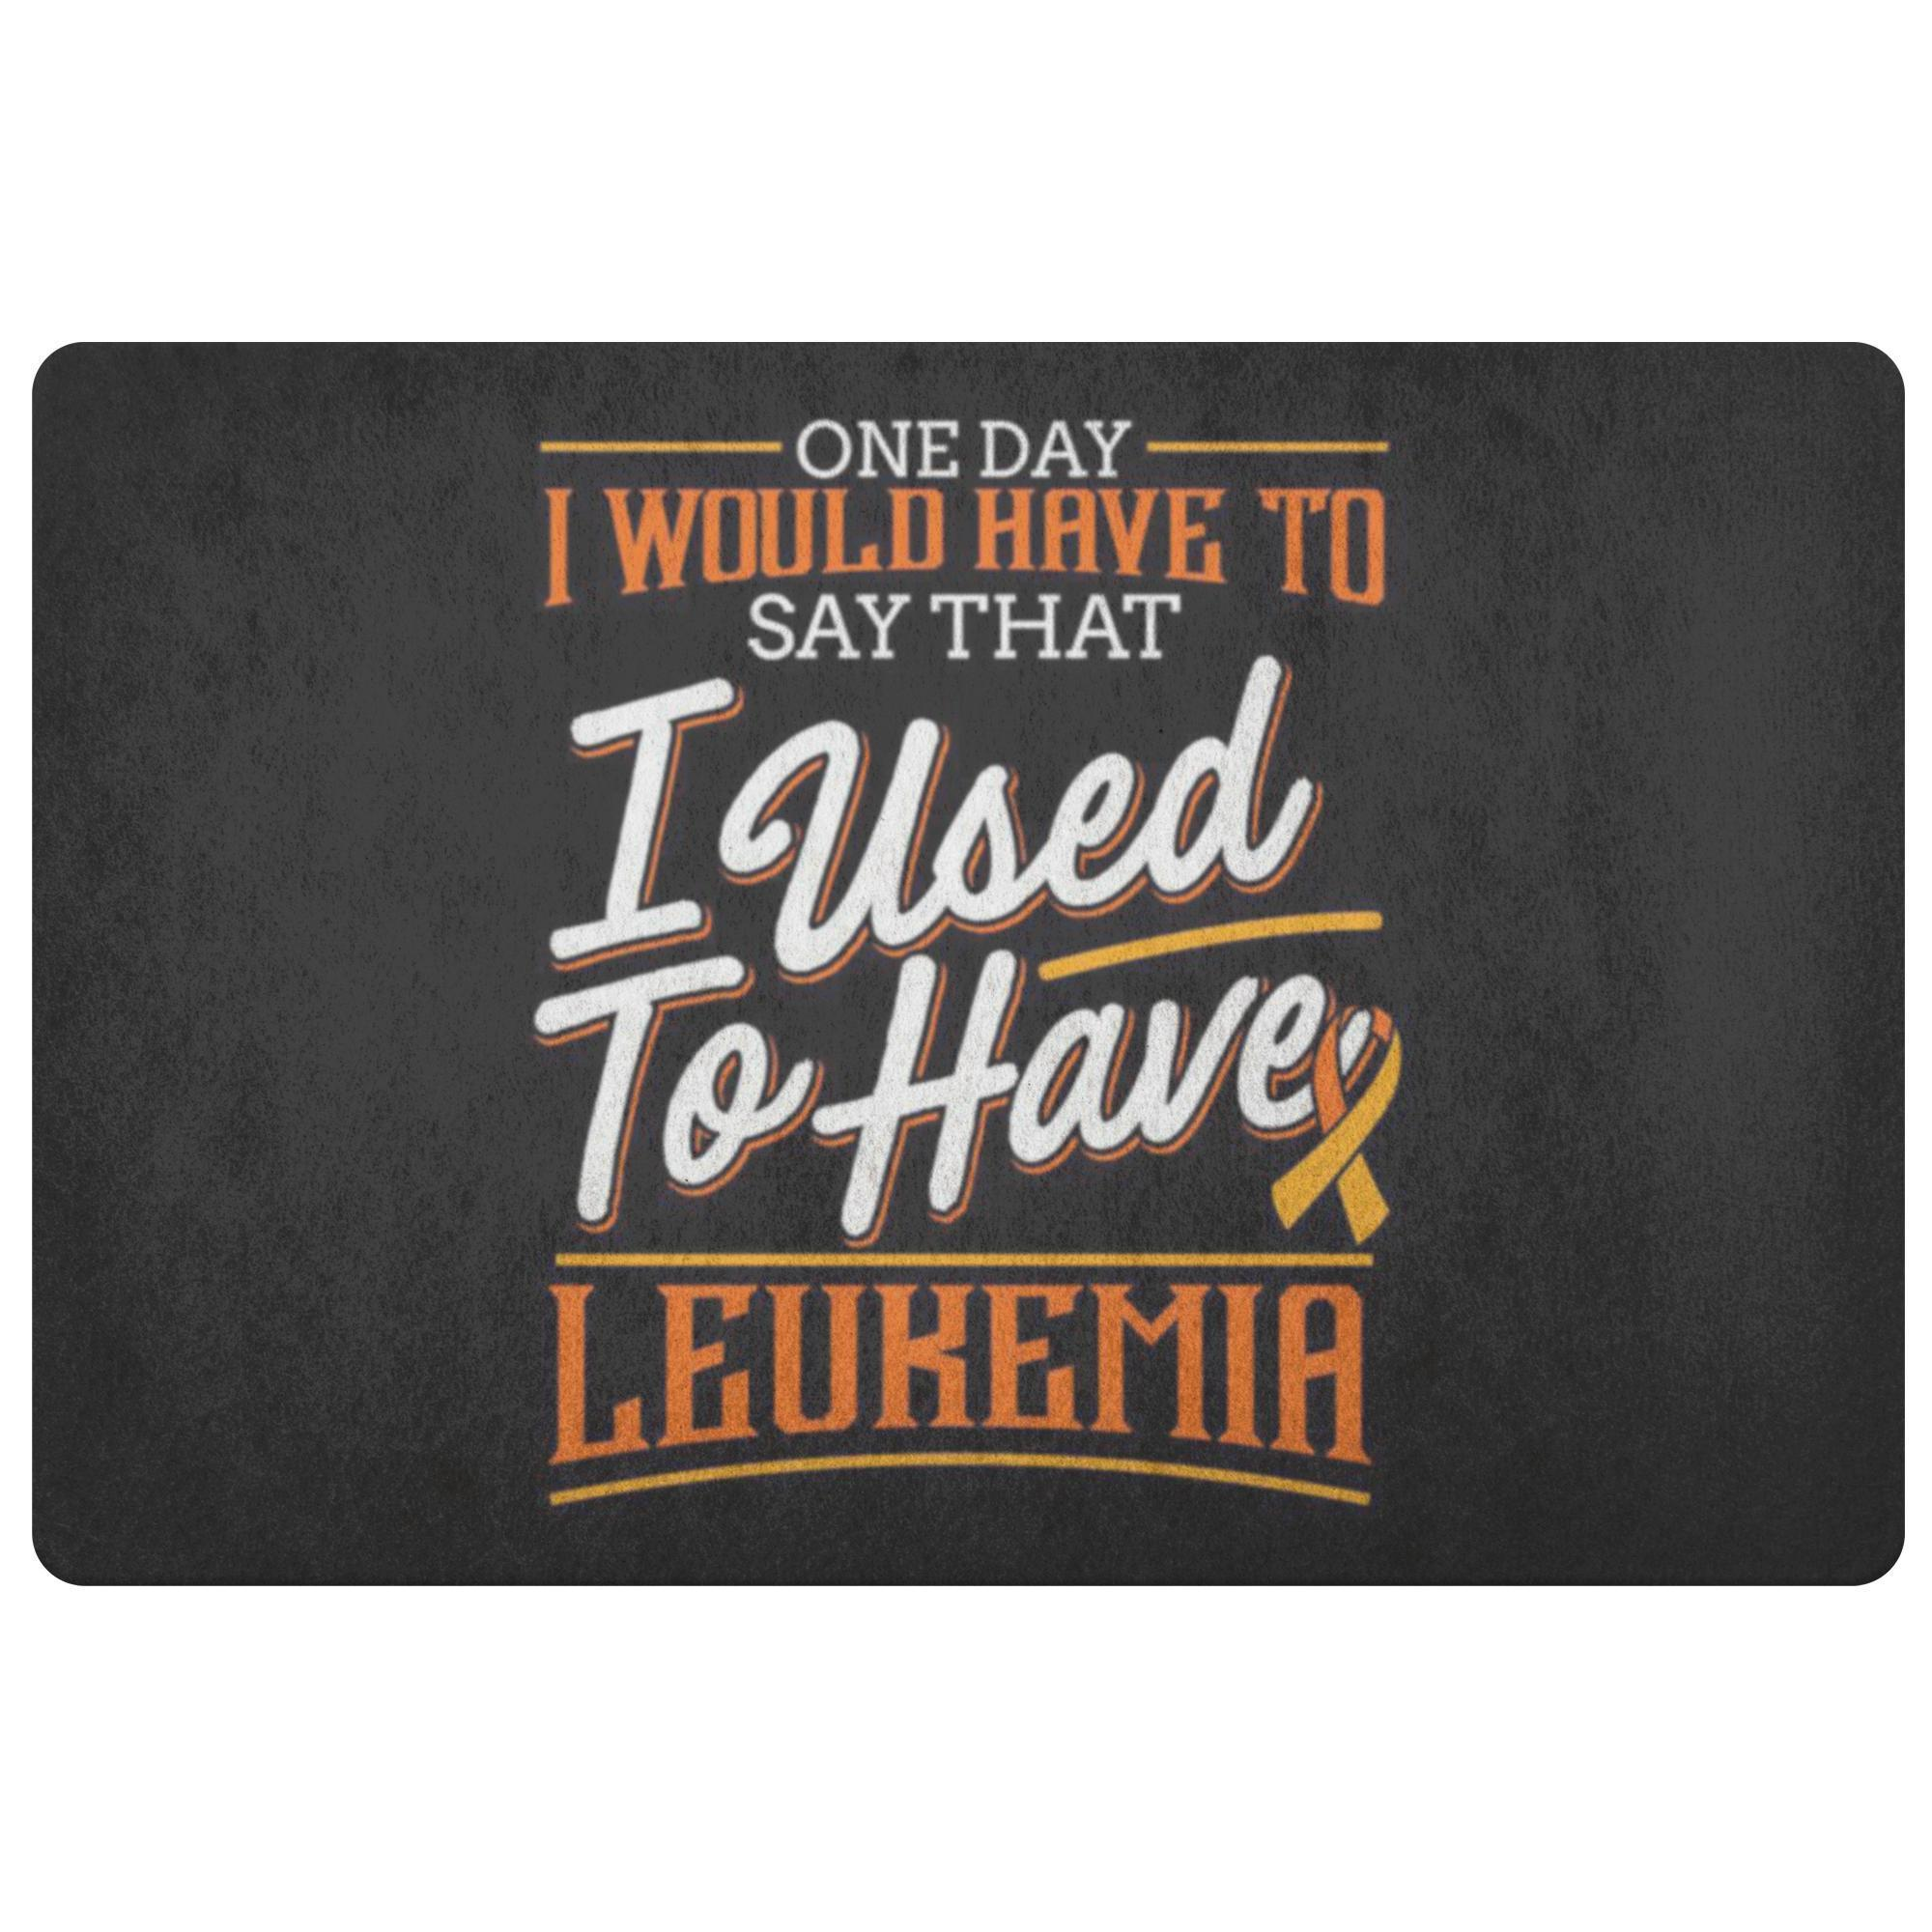 1 Day Have To Say That I Used To Have Leukemia Cancer 18X26 Thin Indoor Door Mat-Doormat-Black-JoyHip.Com